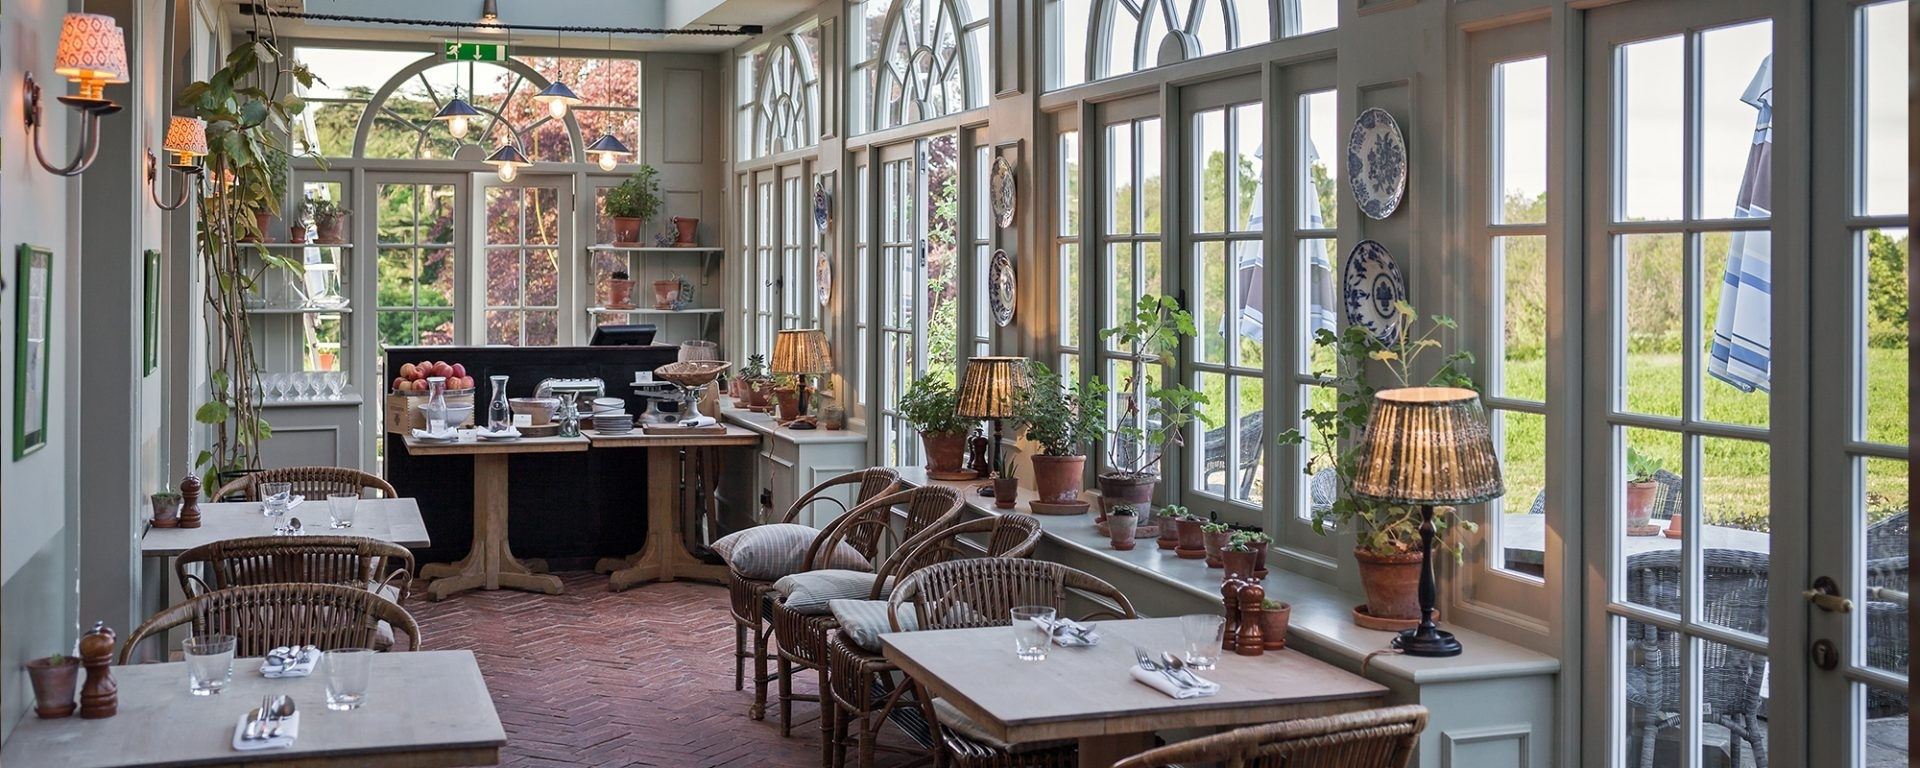 Beaverbrook | English Country House, Hotel, Restaurant & Spa | Eat within The Garden House Restaurant Surrey